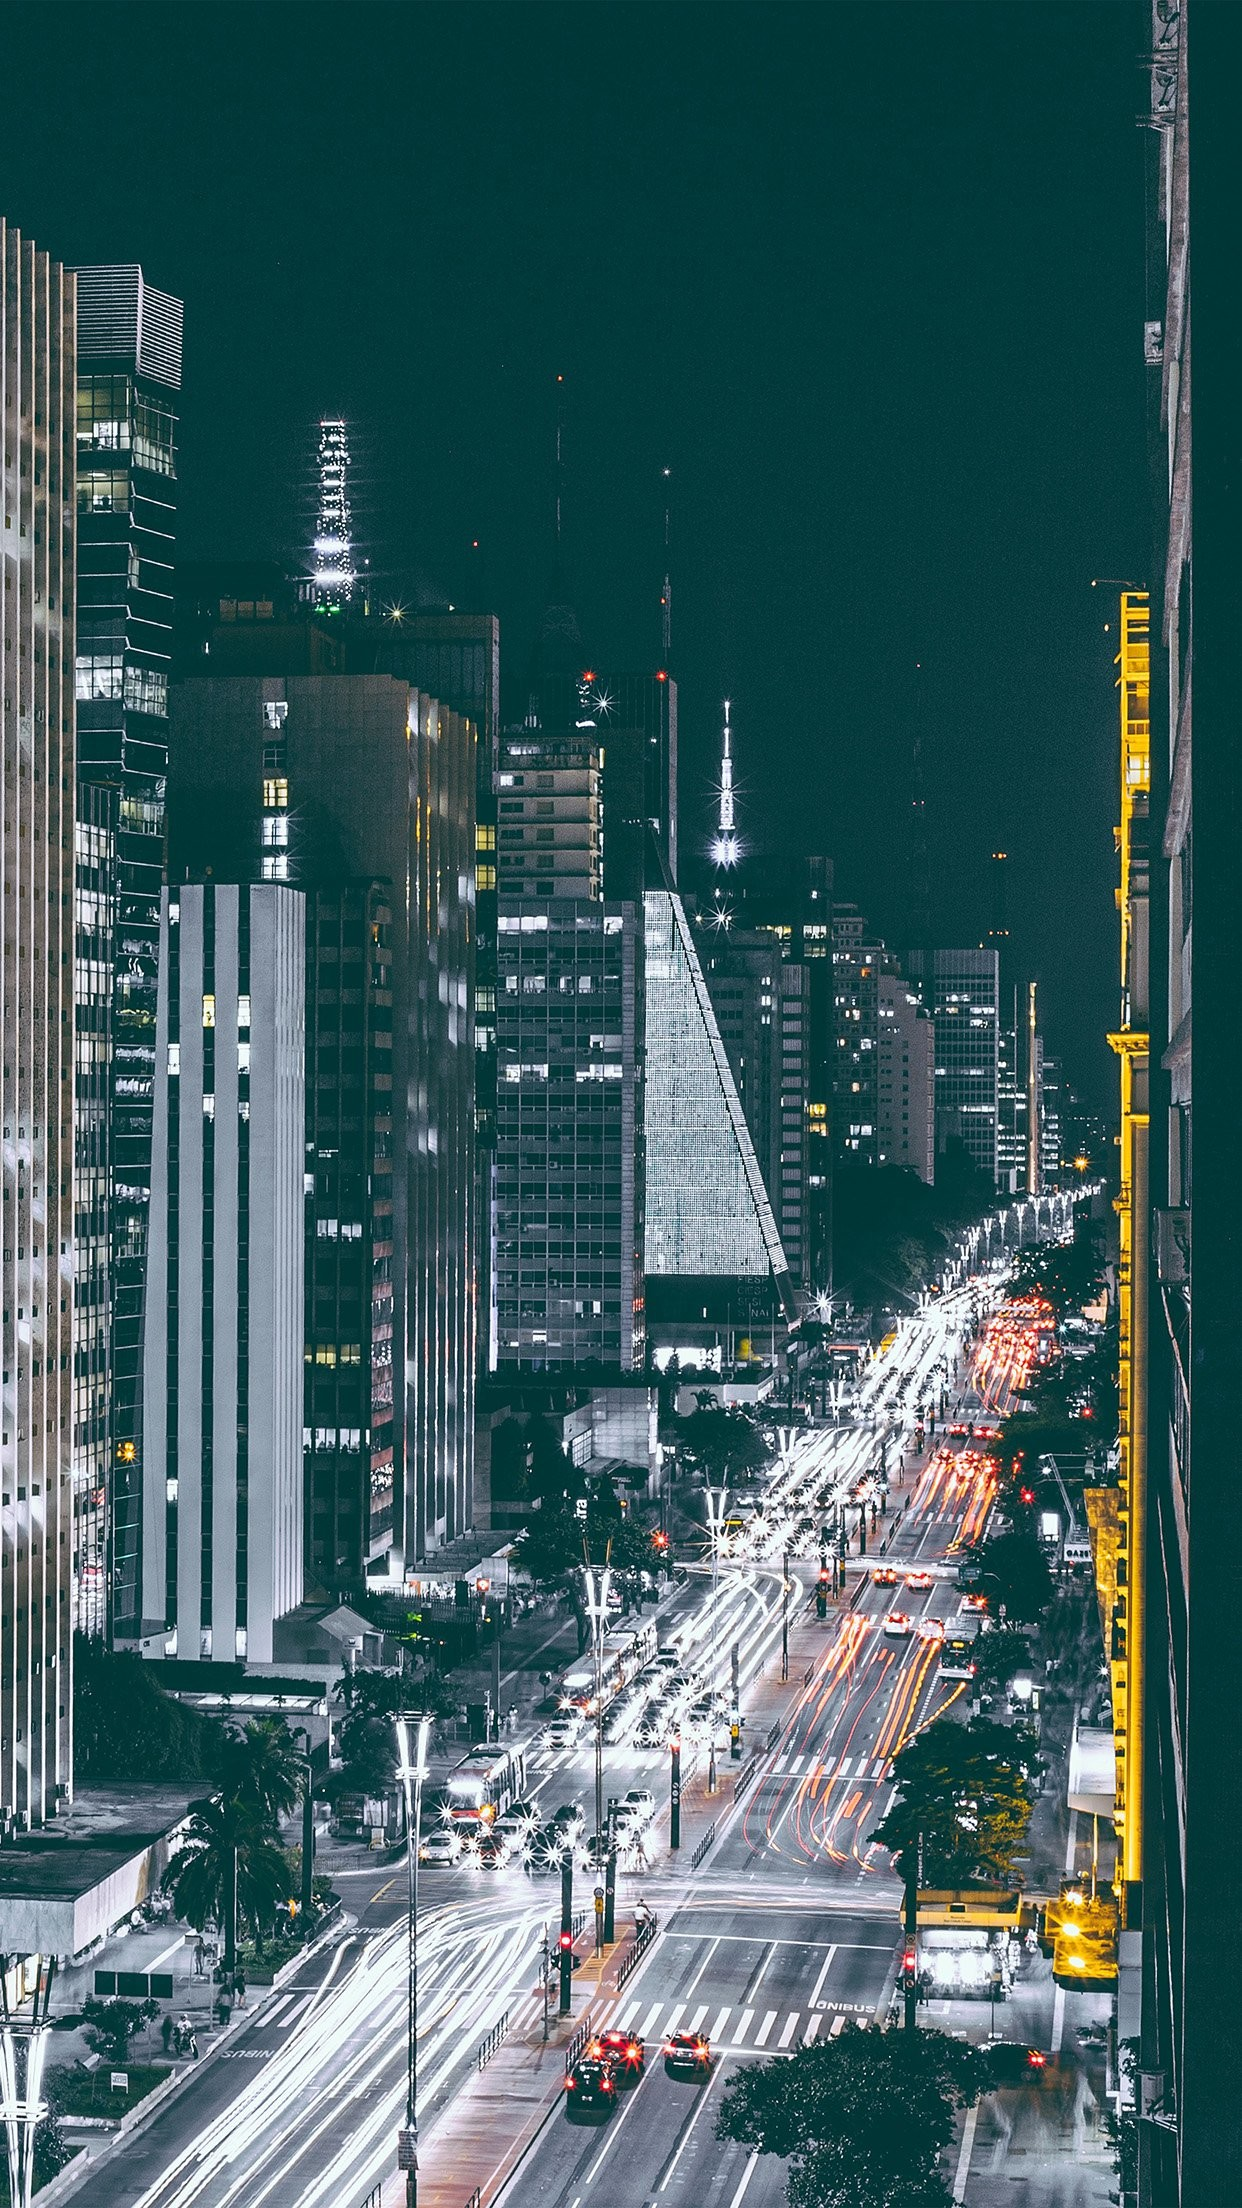 cool city-night-view-urban-street iphone6-plus-wallpaper